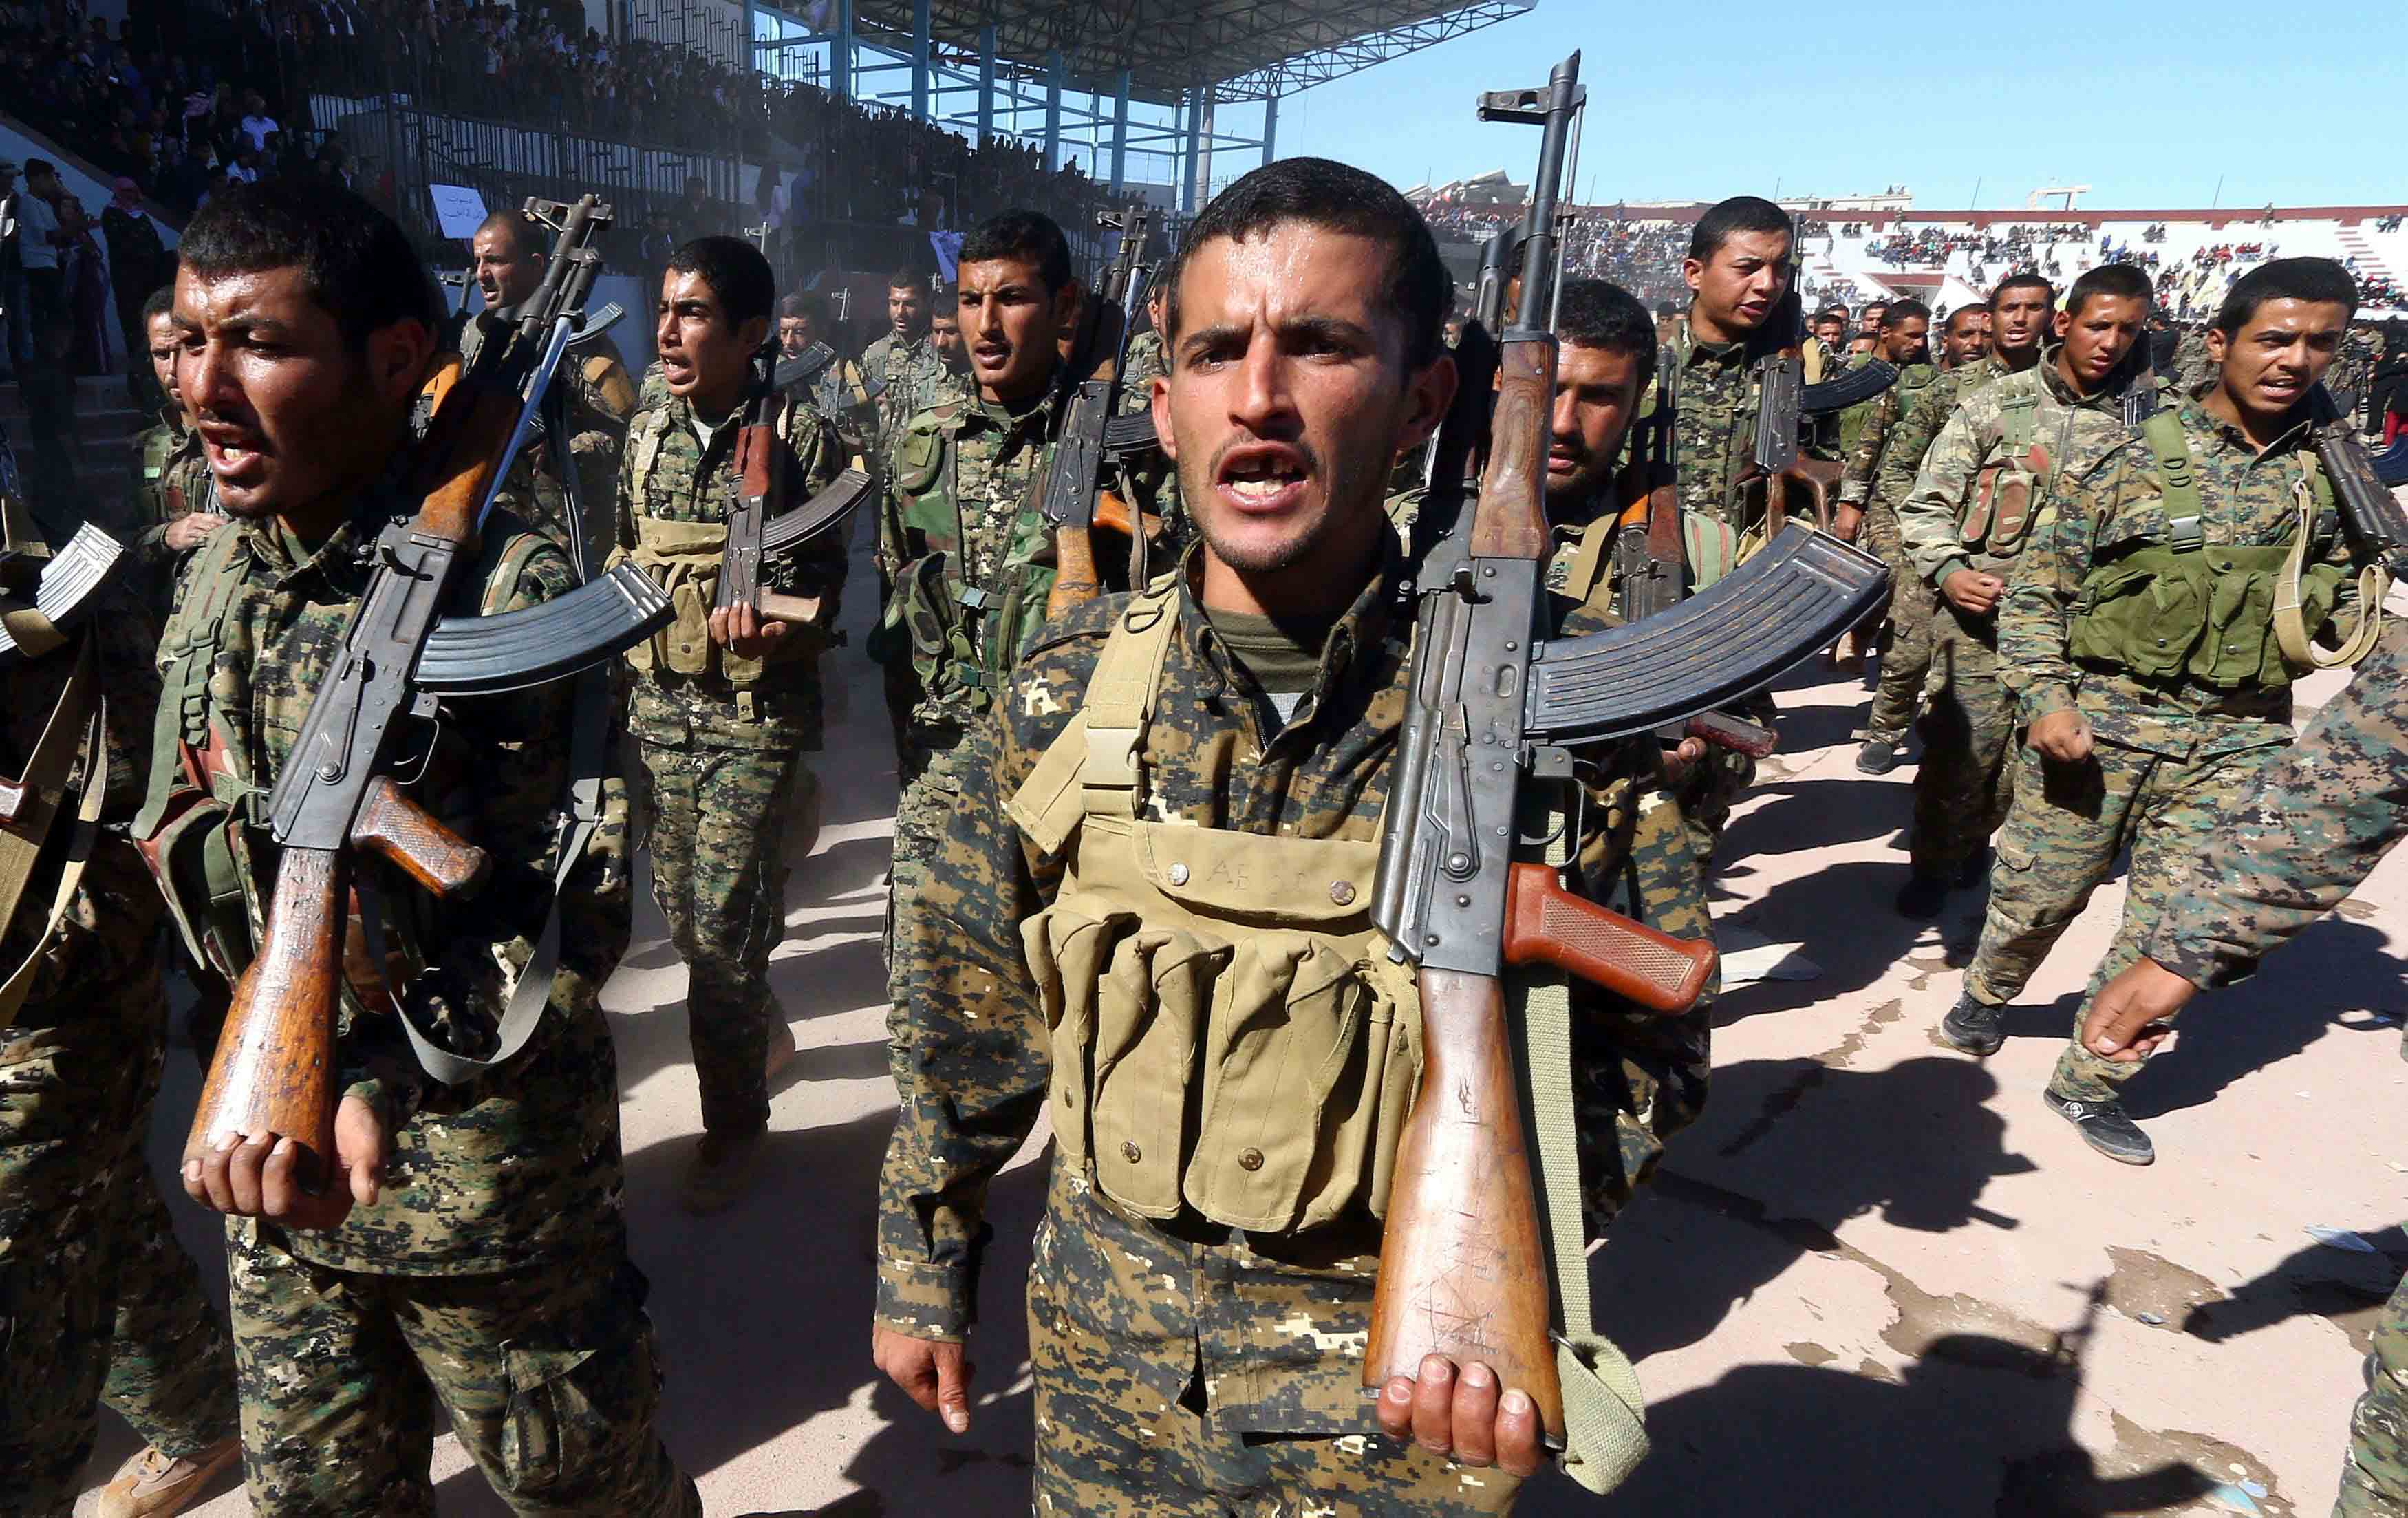 The SDF have faced a fierce fightback from the jihadists, including under the cover of sandstorms